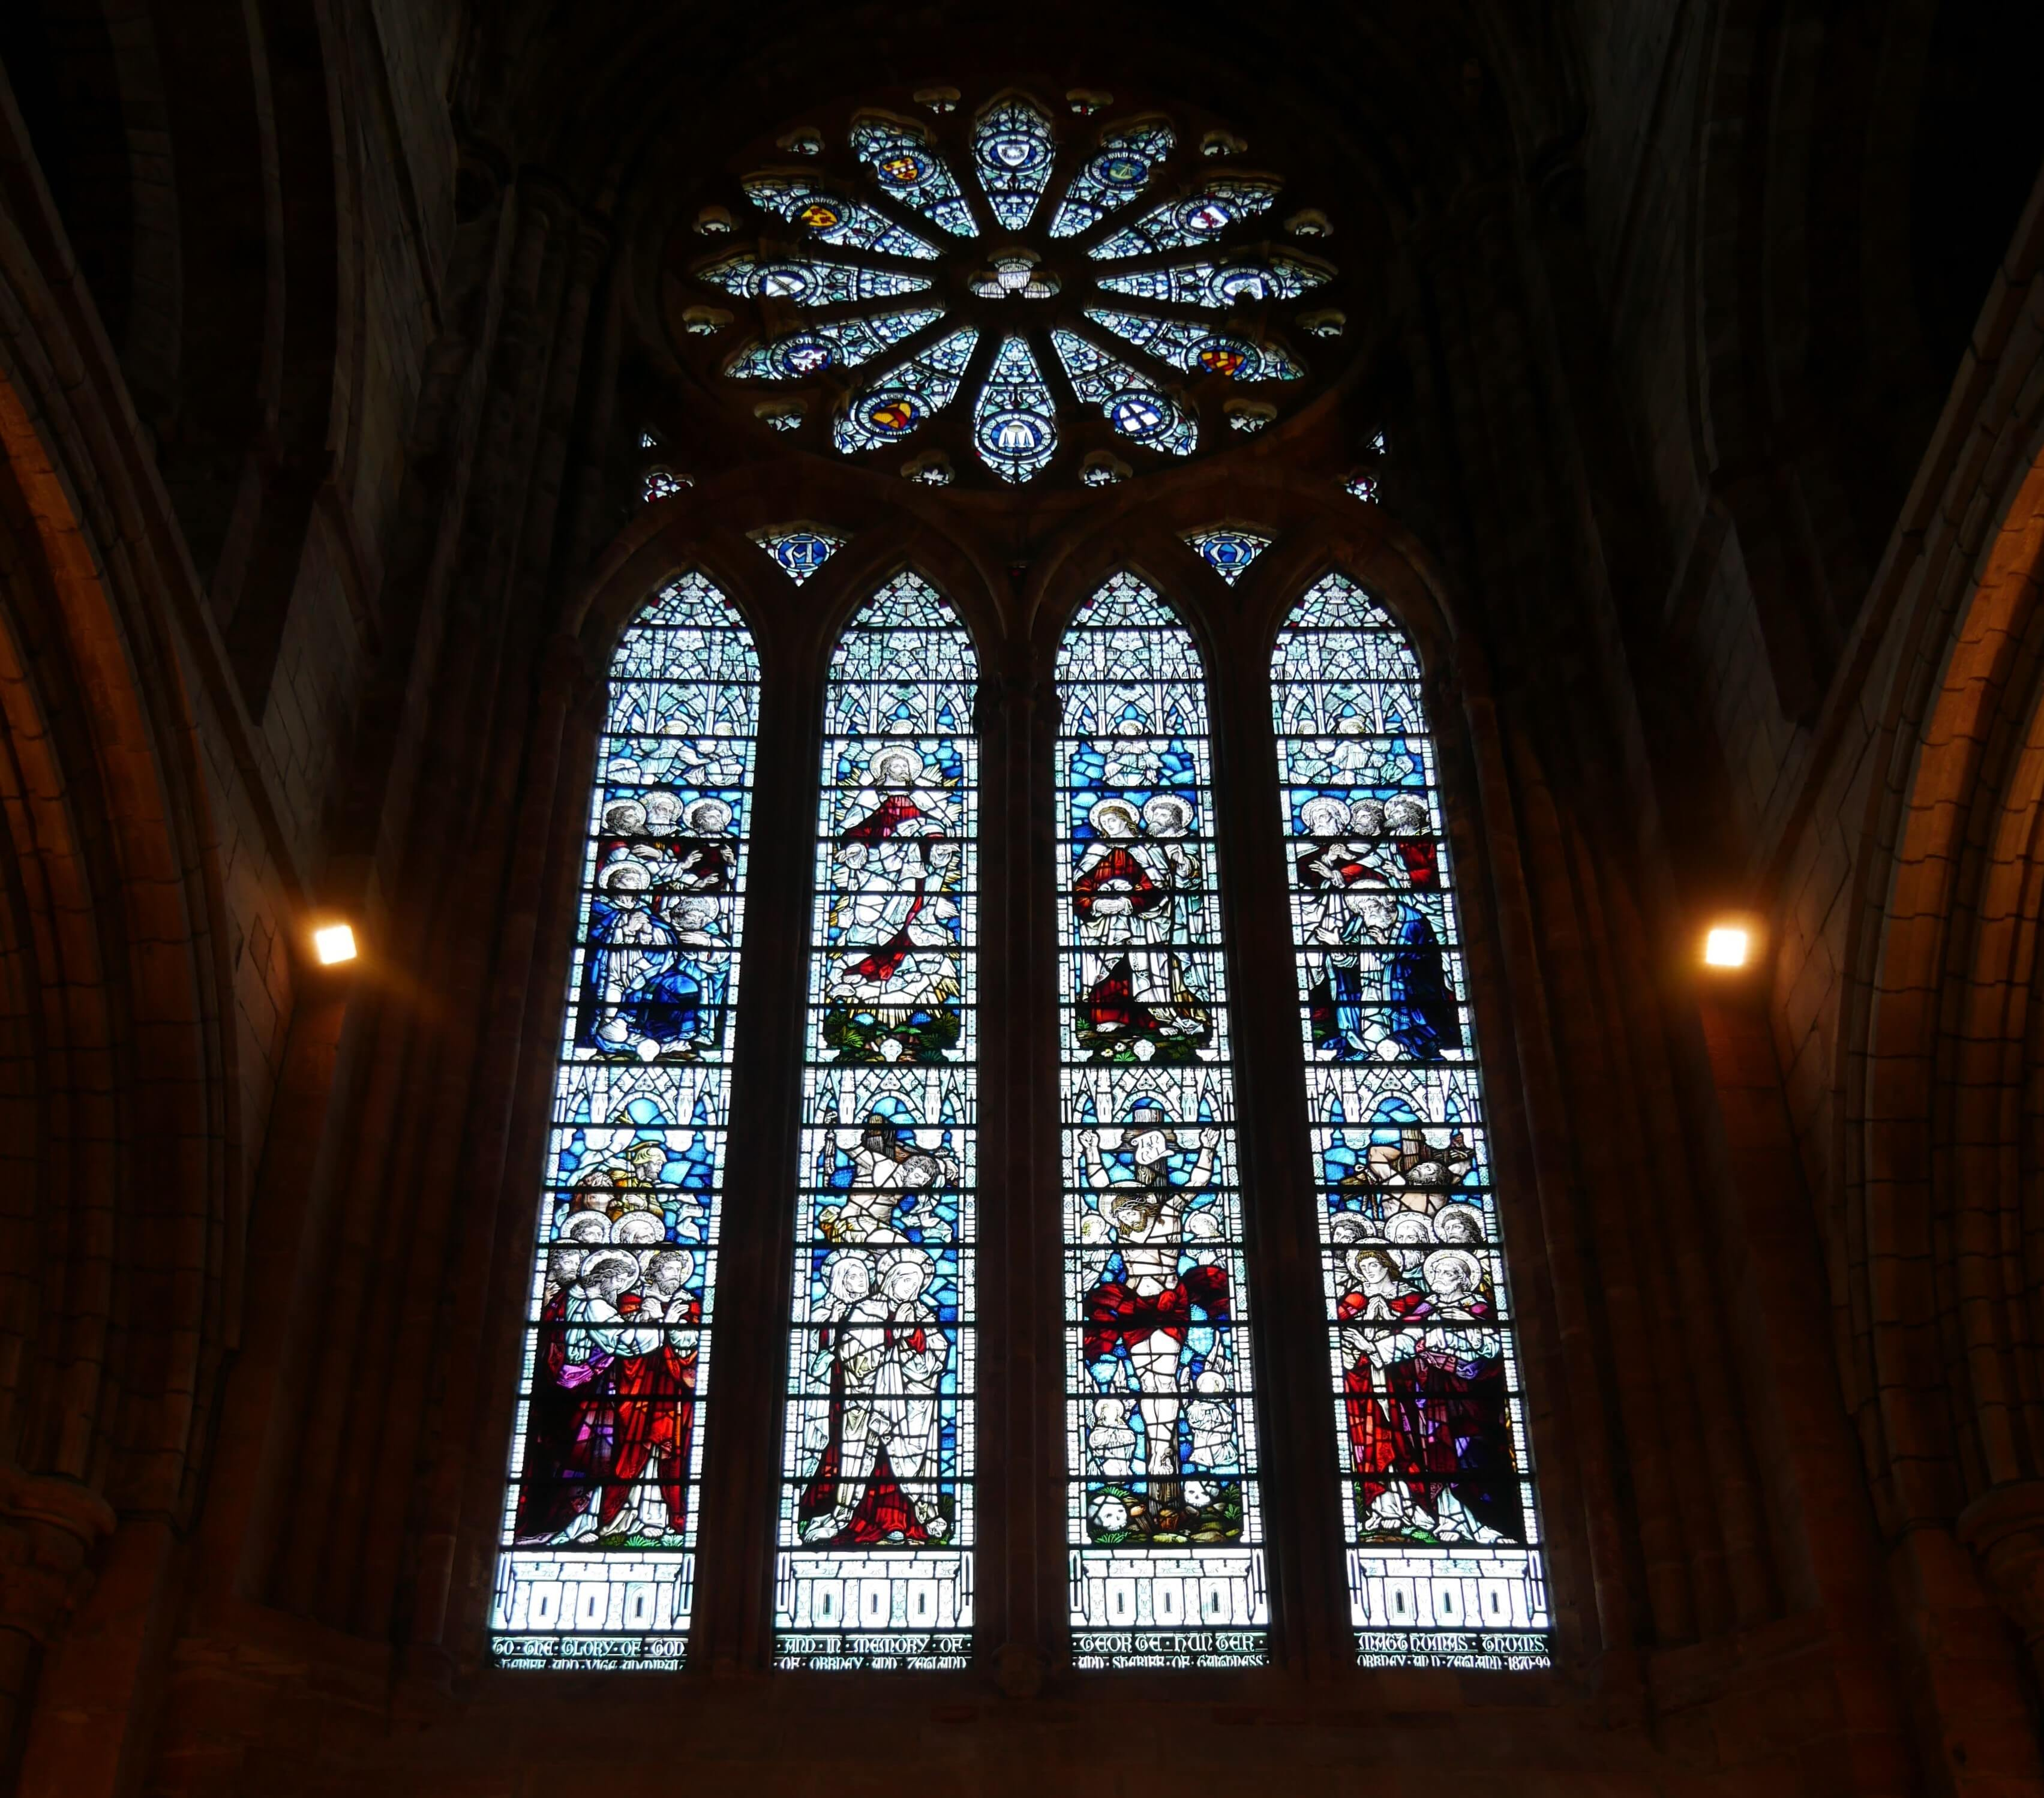 East window in the cathedral in Kirkwall, Orkney Islands, Scotland, UK